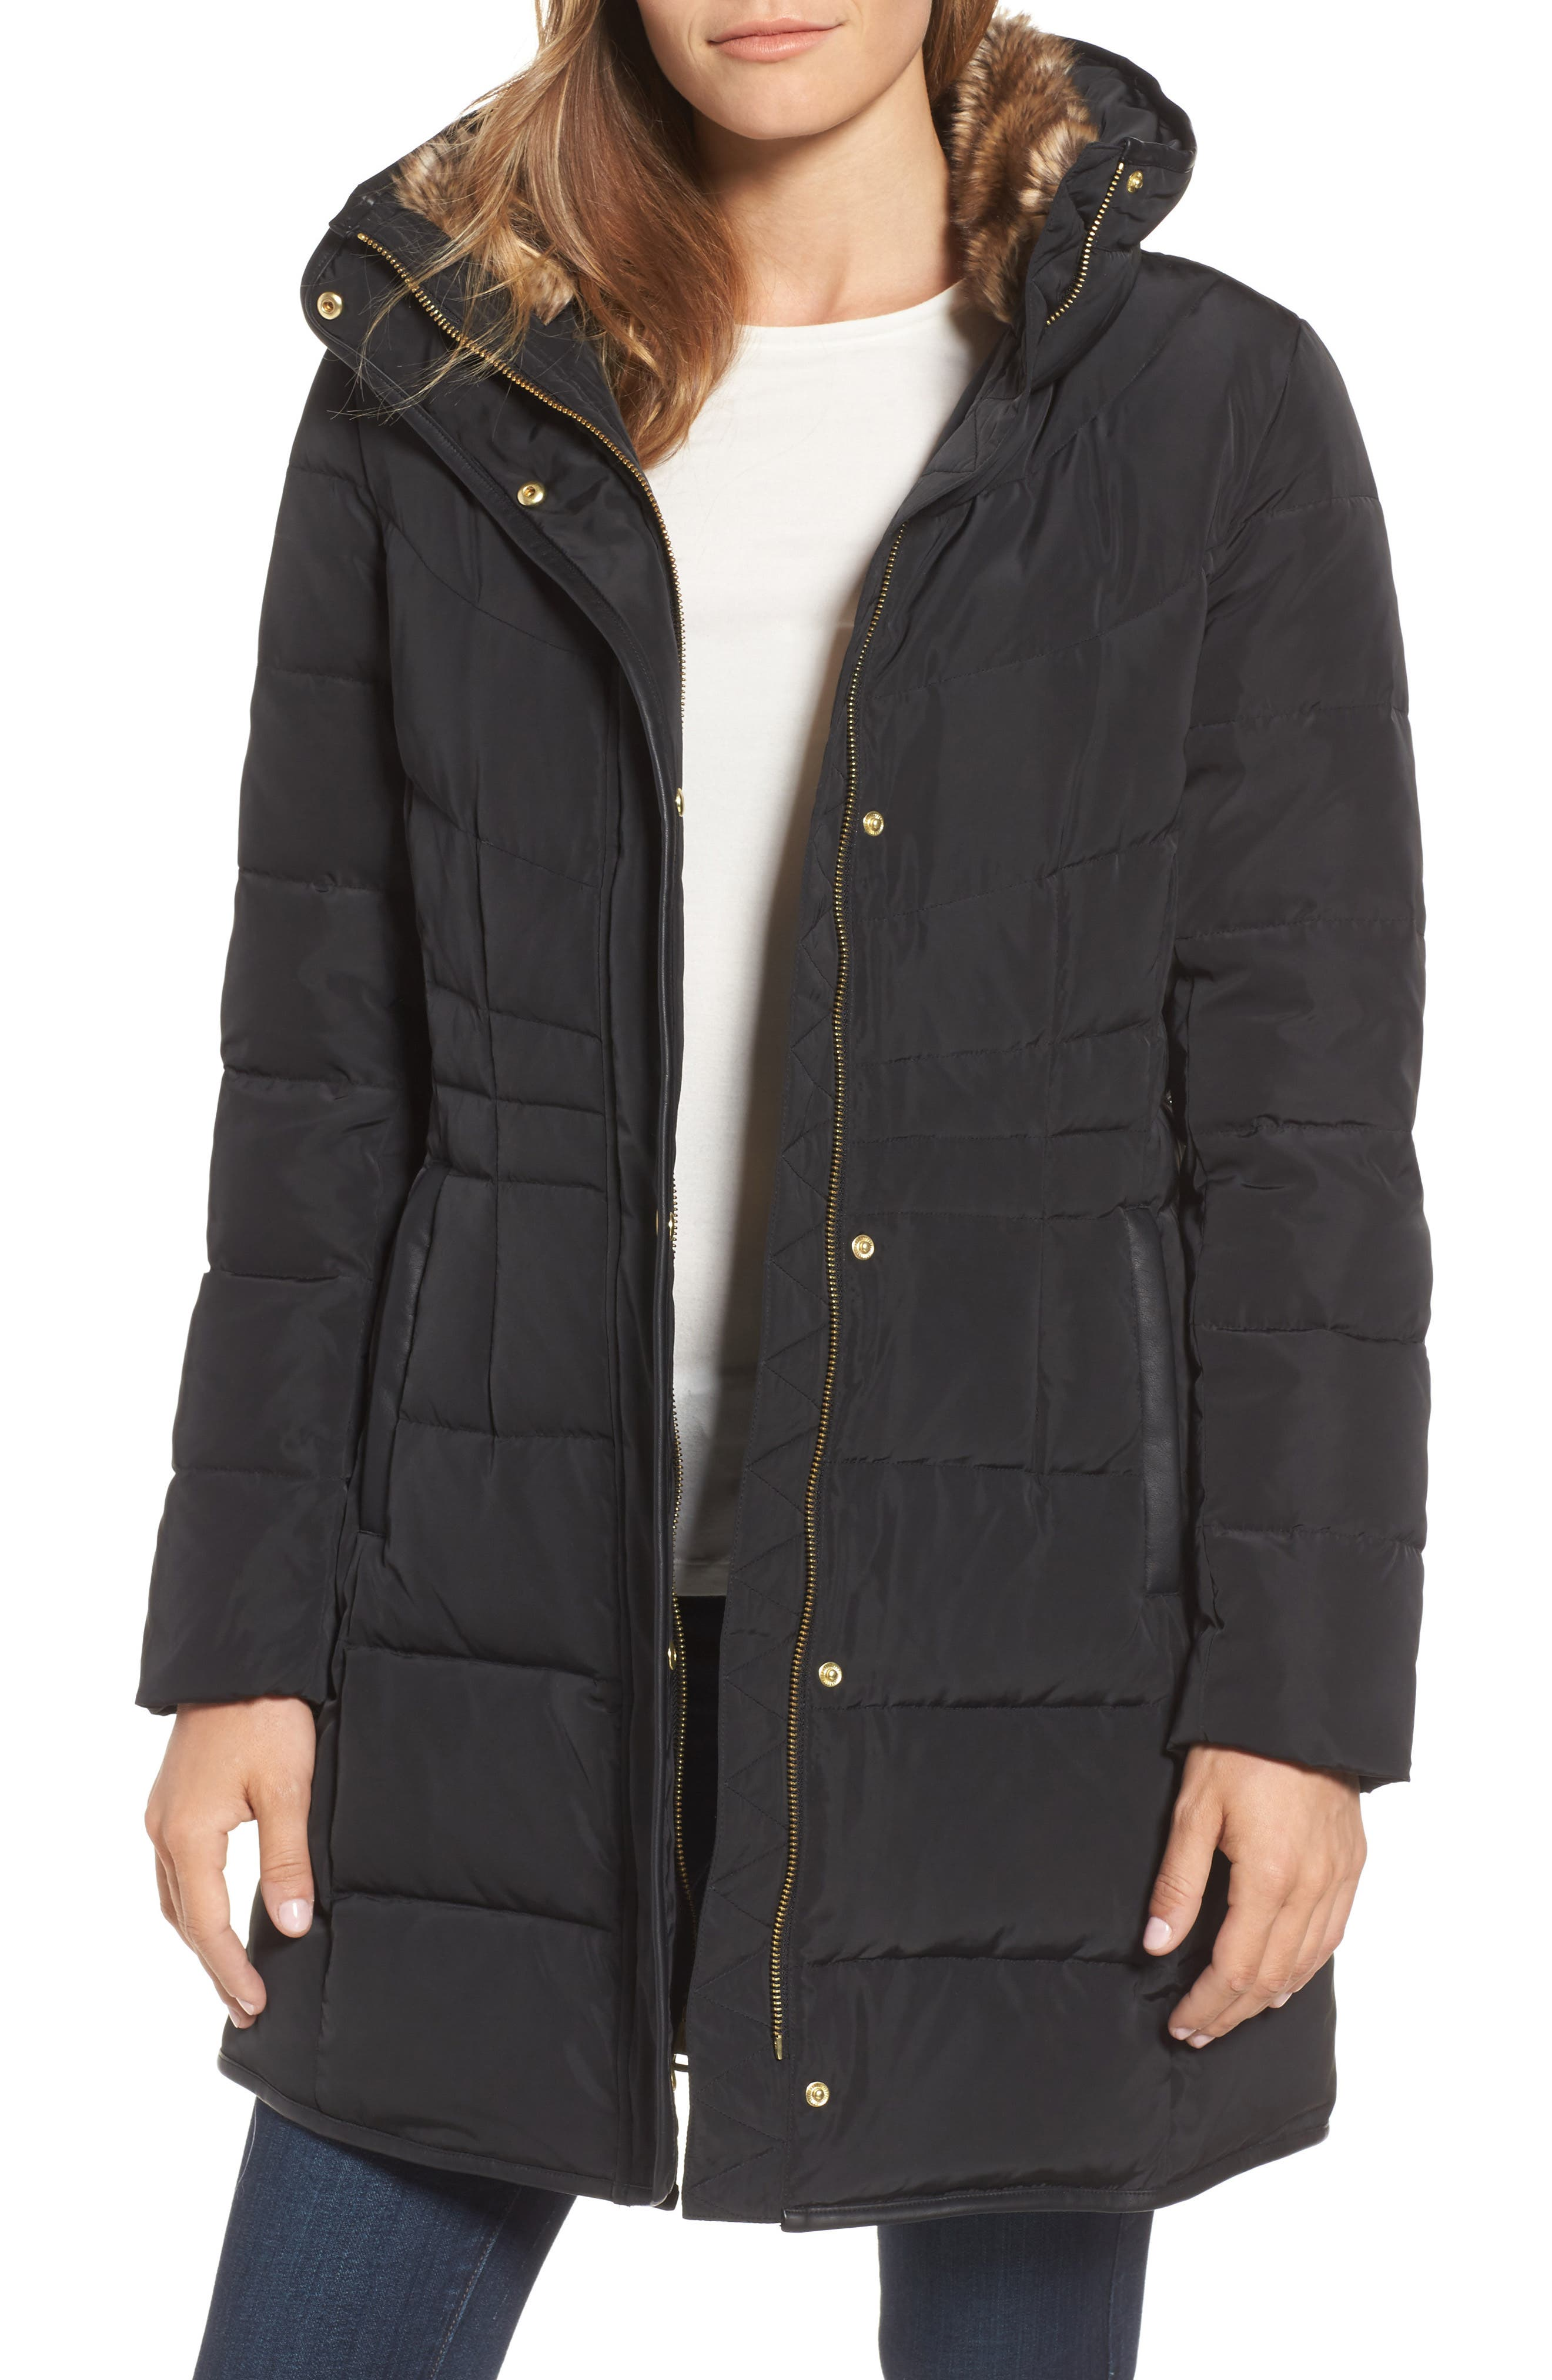 Alternate Image 1 Selected - Cole Haan Quilted Down & Feather Fill Jacket with Faux Fur Trim